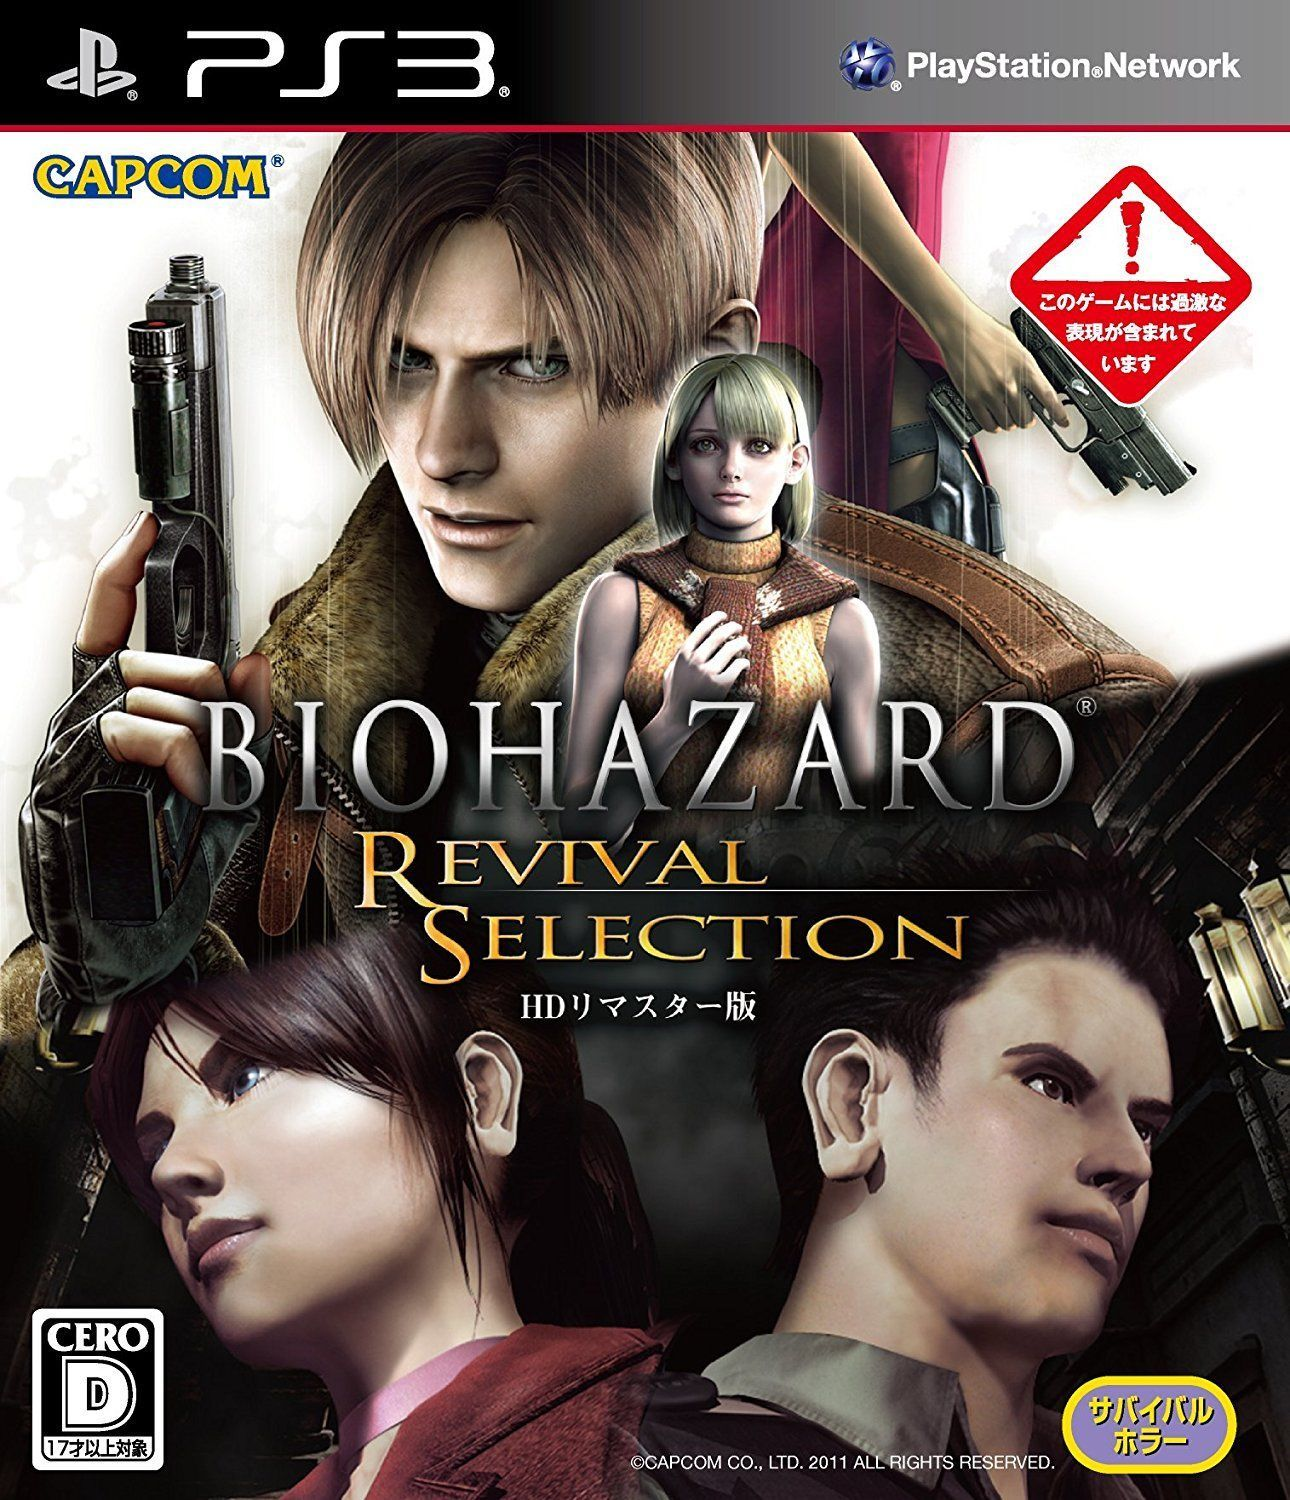 Ps3 Biohazard Hd Revival Selection Resident Evil Japan Official